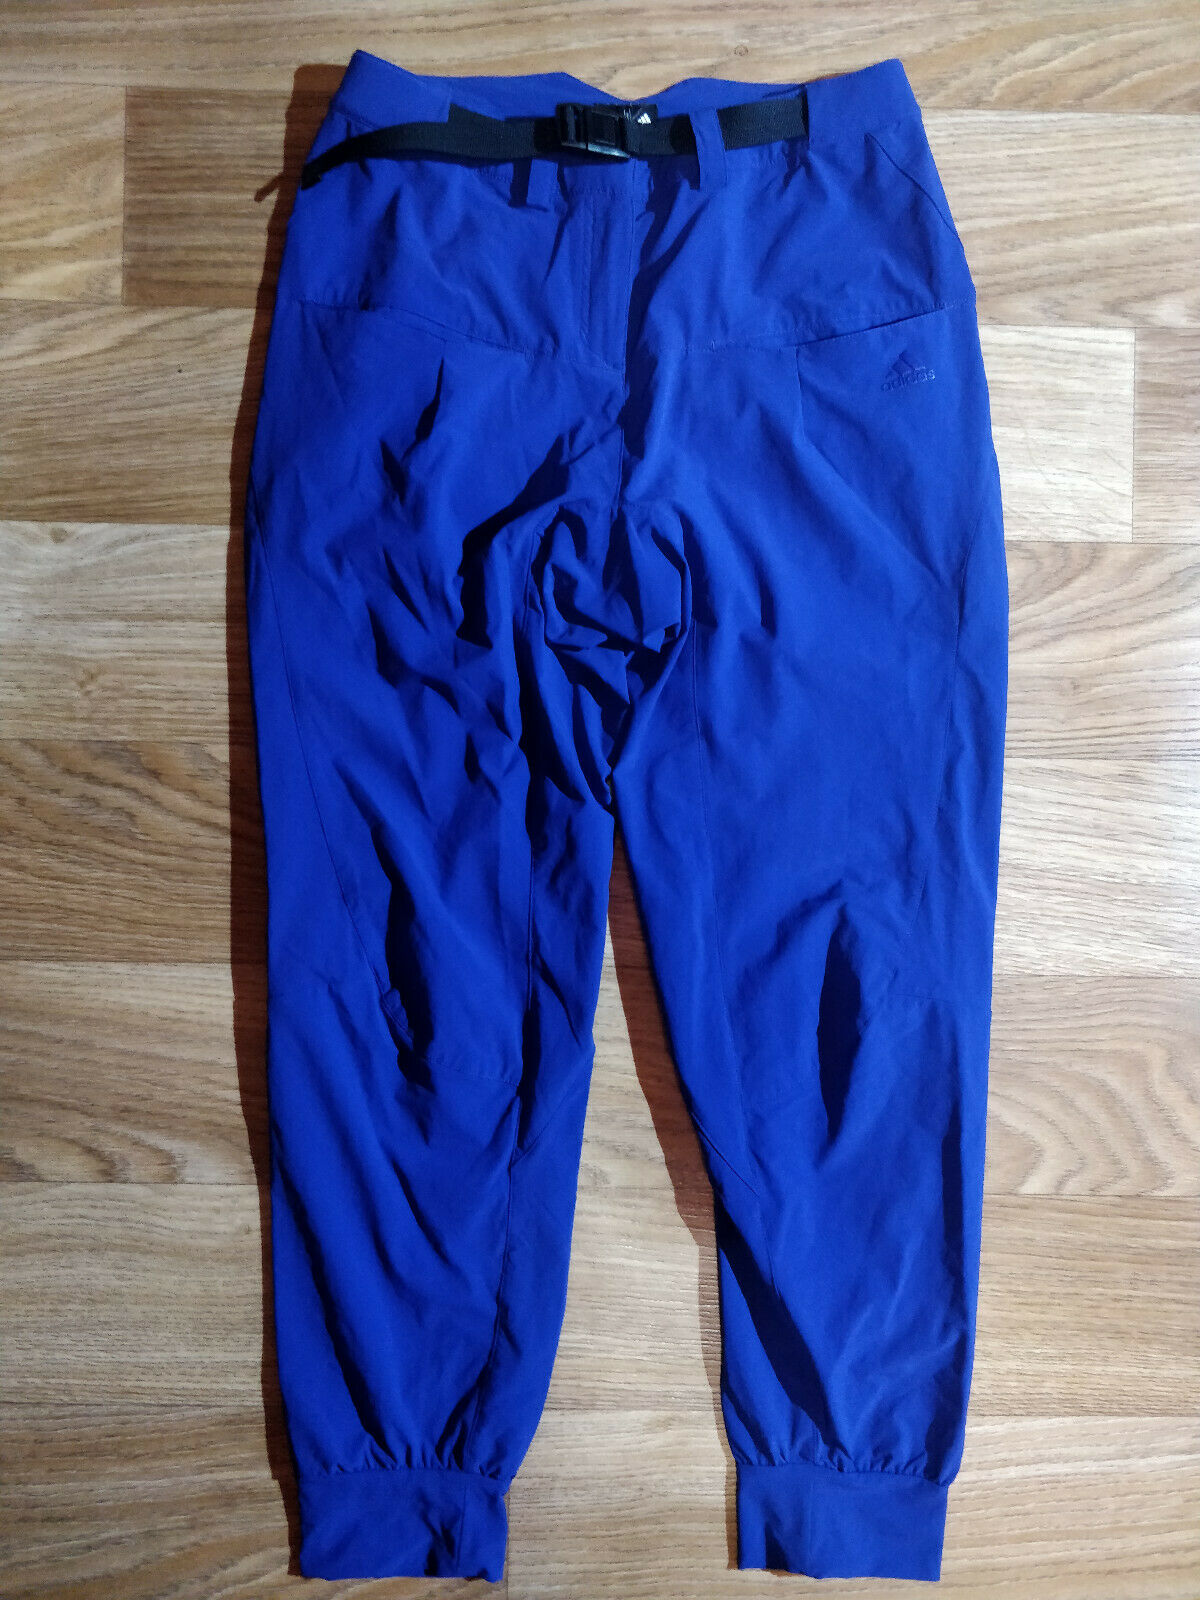 Adidas Outdoor damen Hiking Pants Trousers Training Joggers lila lila